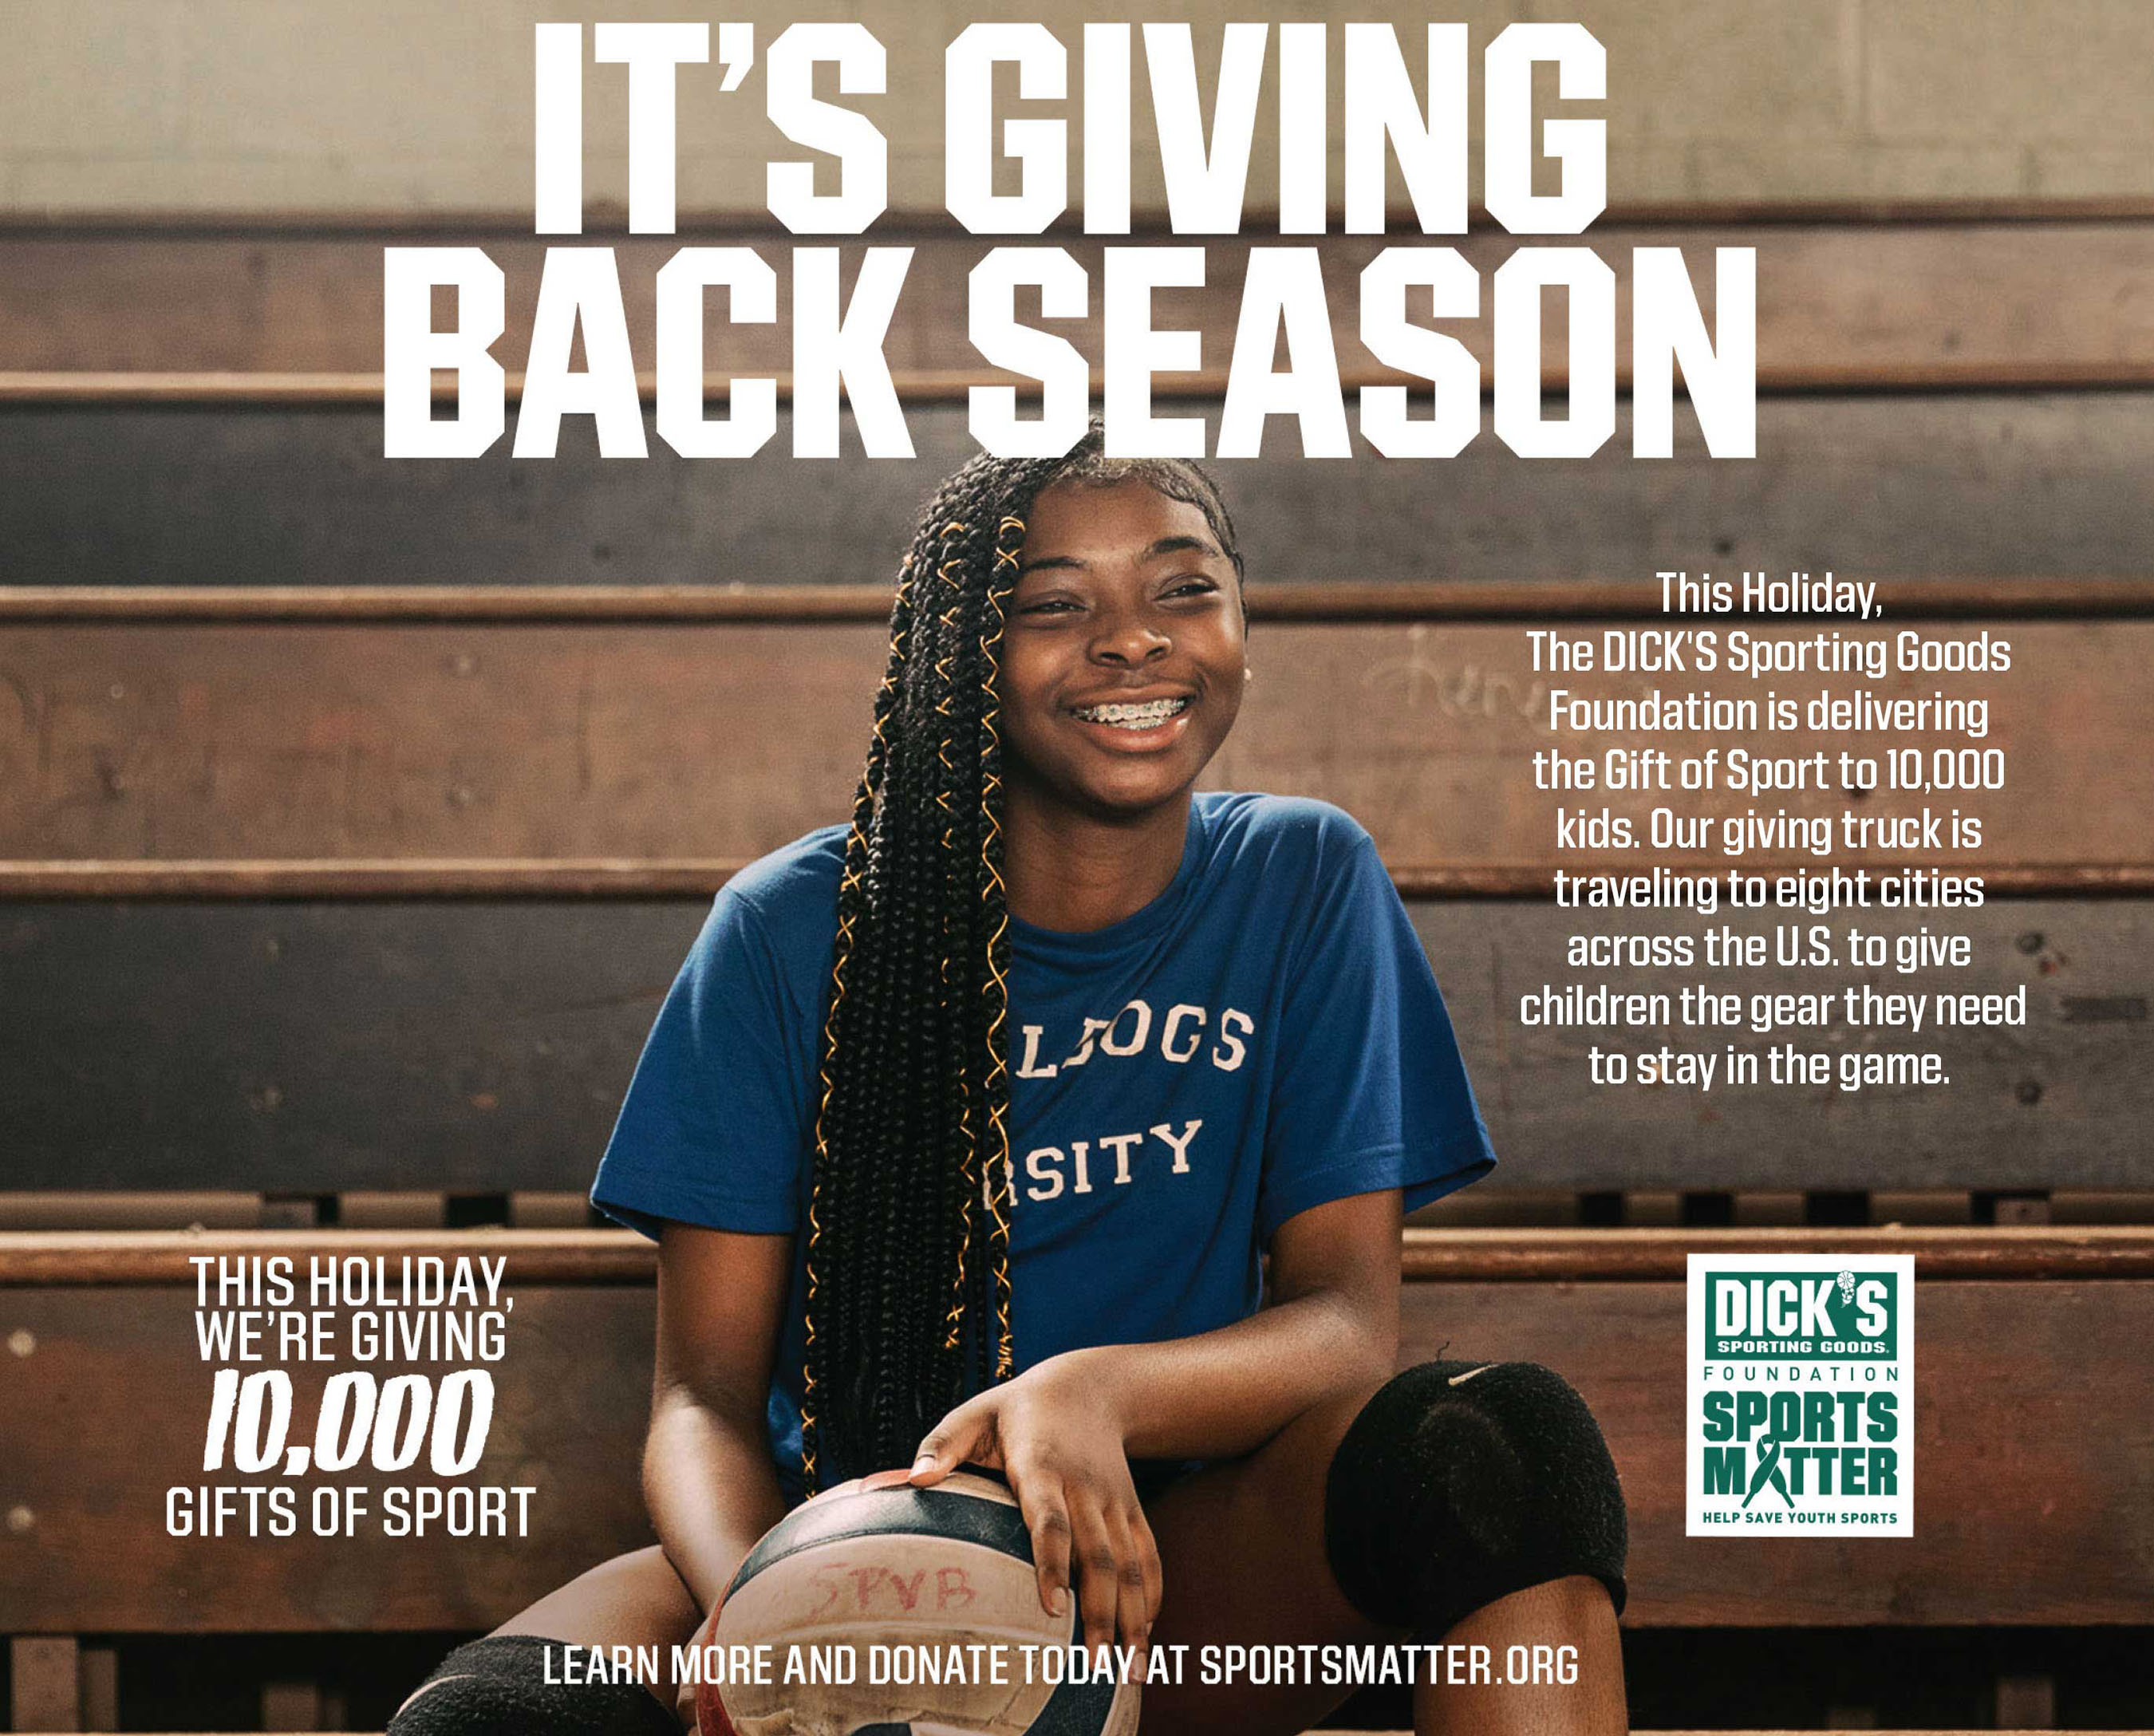 DICK'S Sporting Goods and The DICK'S Sporting Goods Foundation deliver the Magic of Sport to 10,000 kids with the help of Candace Parker, Matt Ryan, Black Griffin and the Pittsburgh Penguins